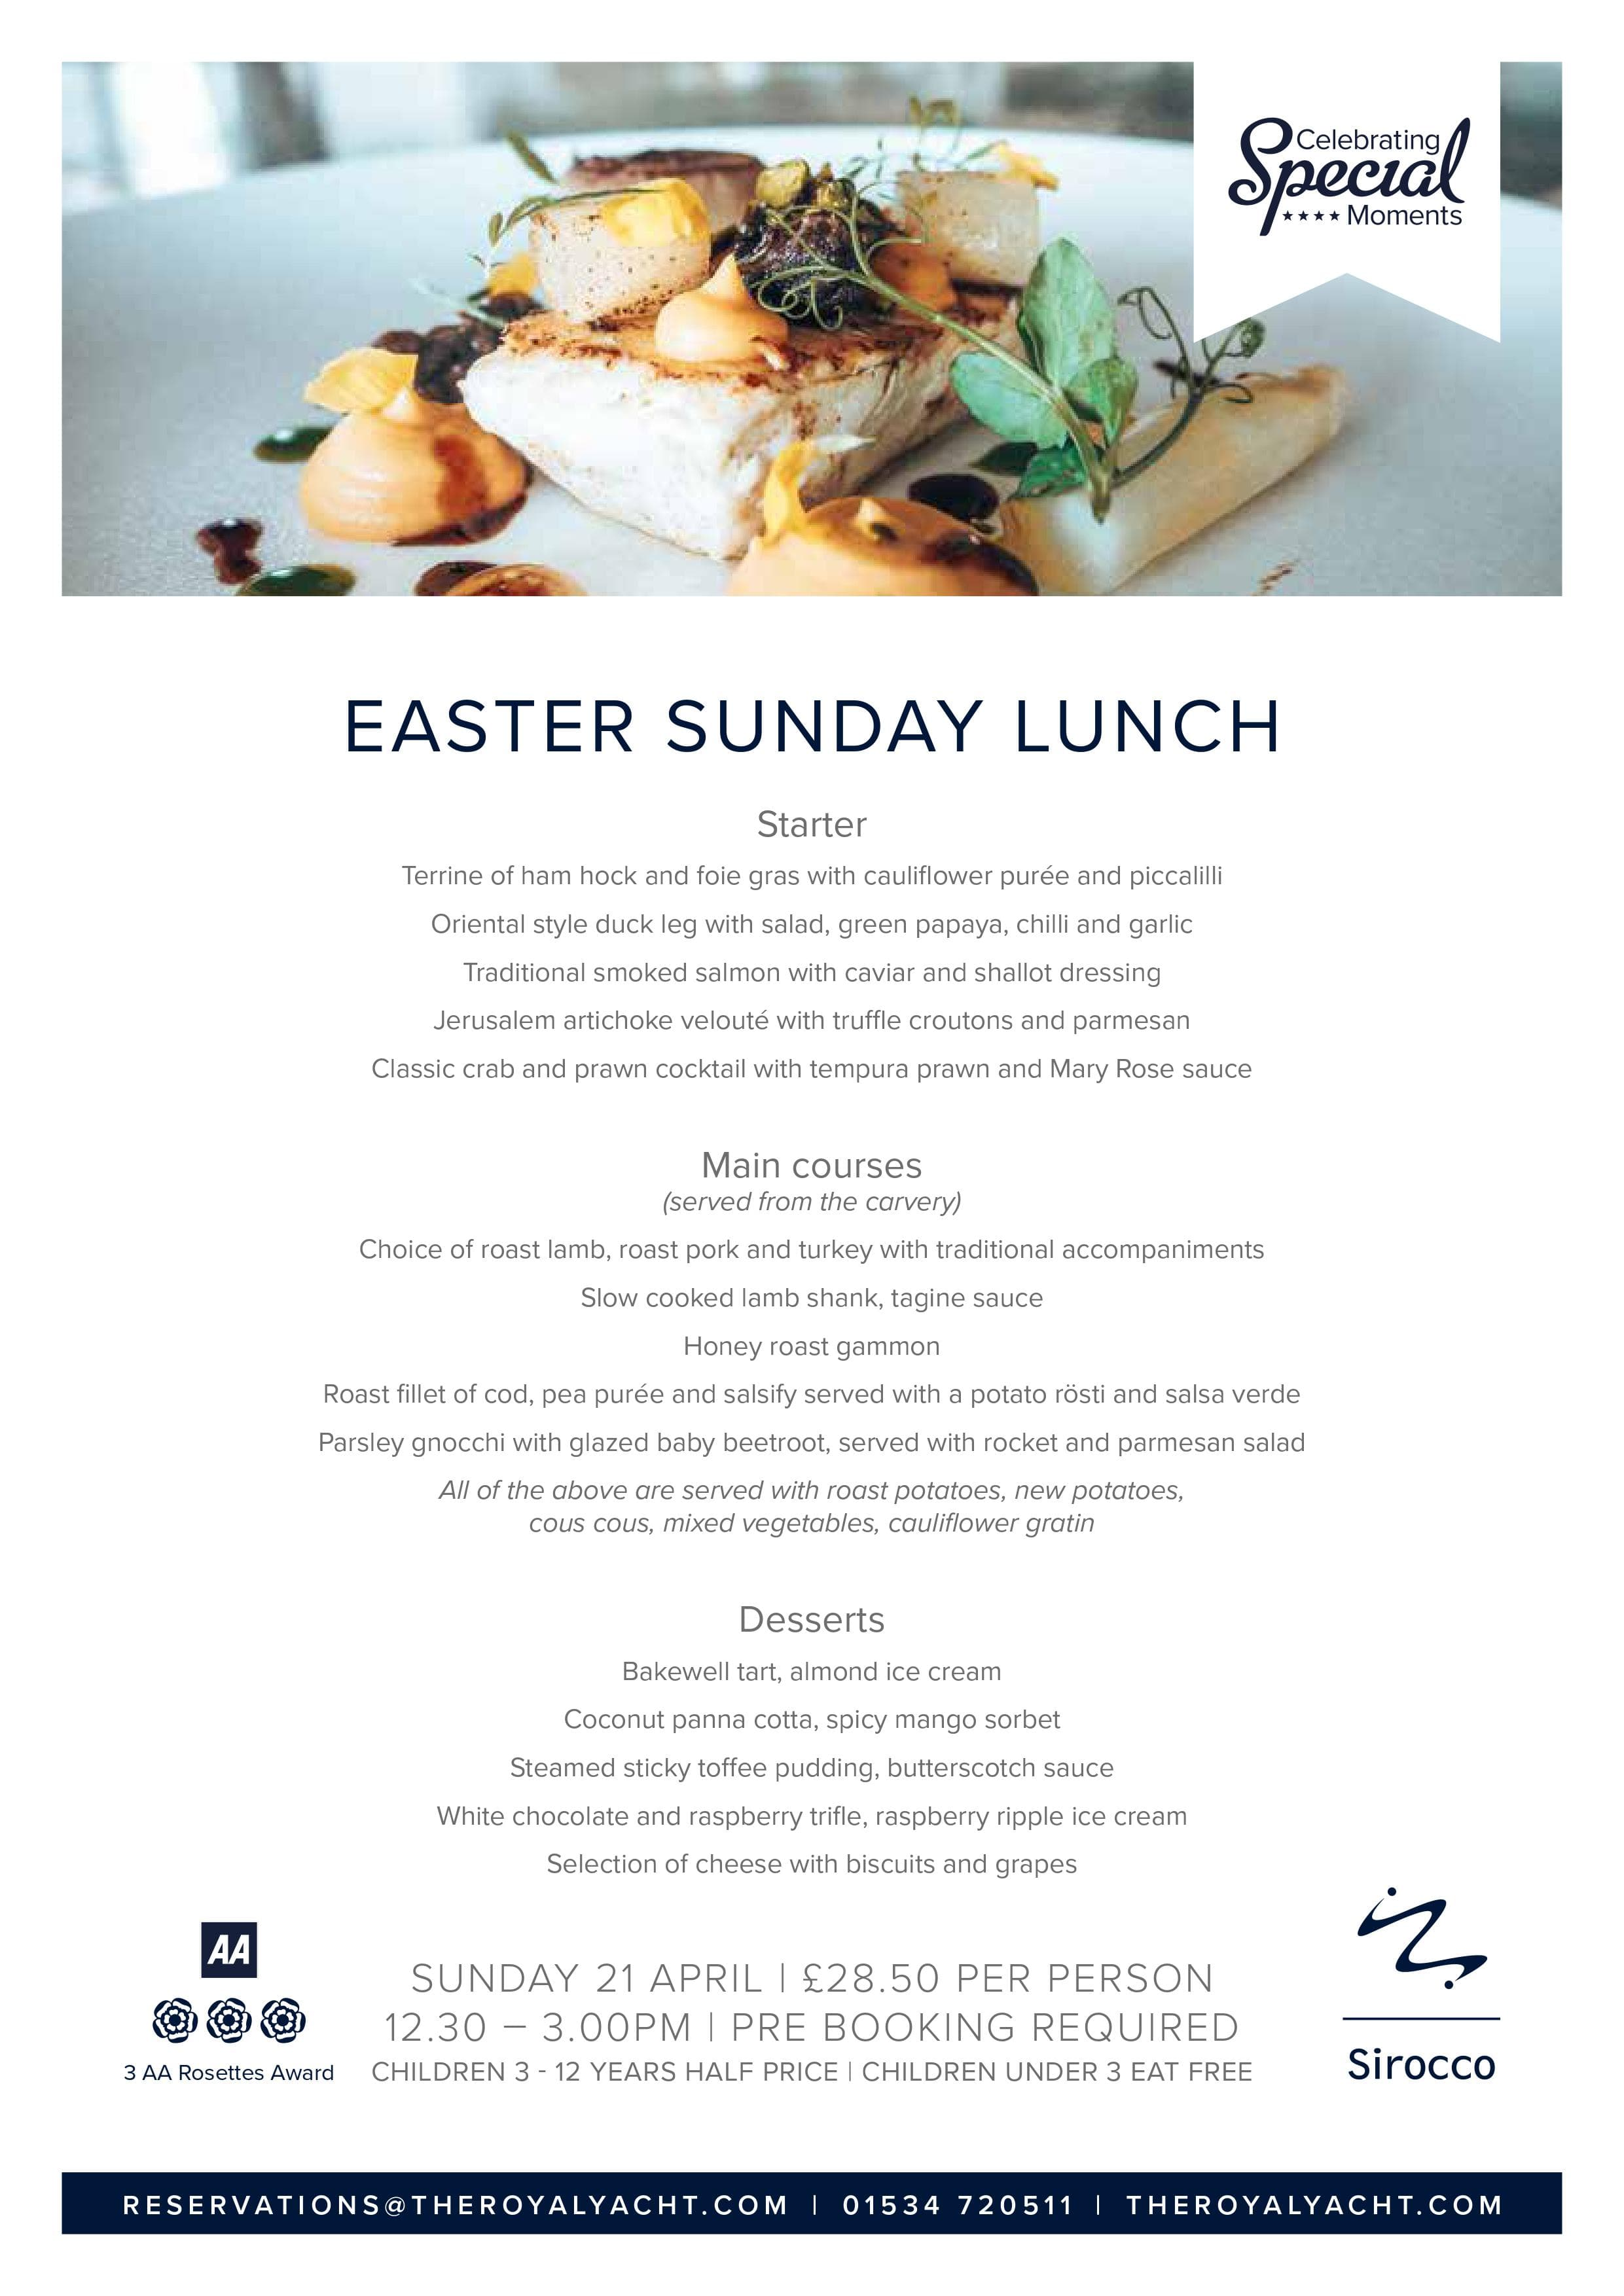 Sirocco Easter Sunday Lunch Menu